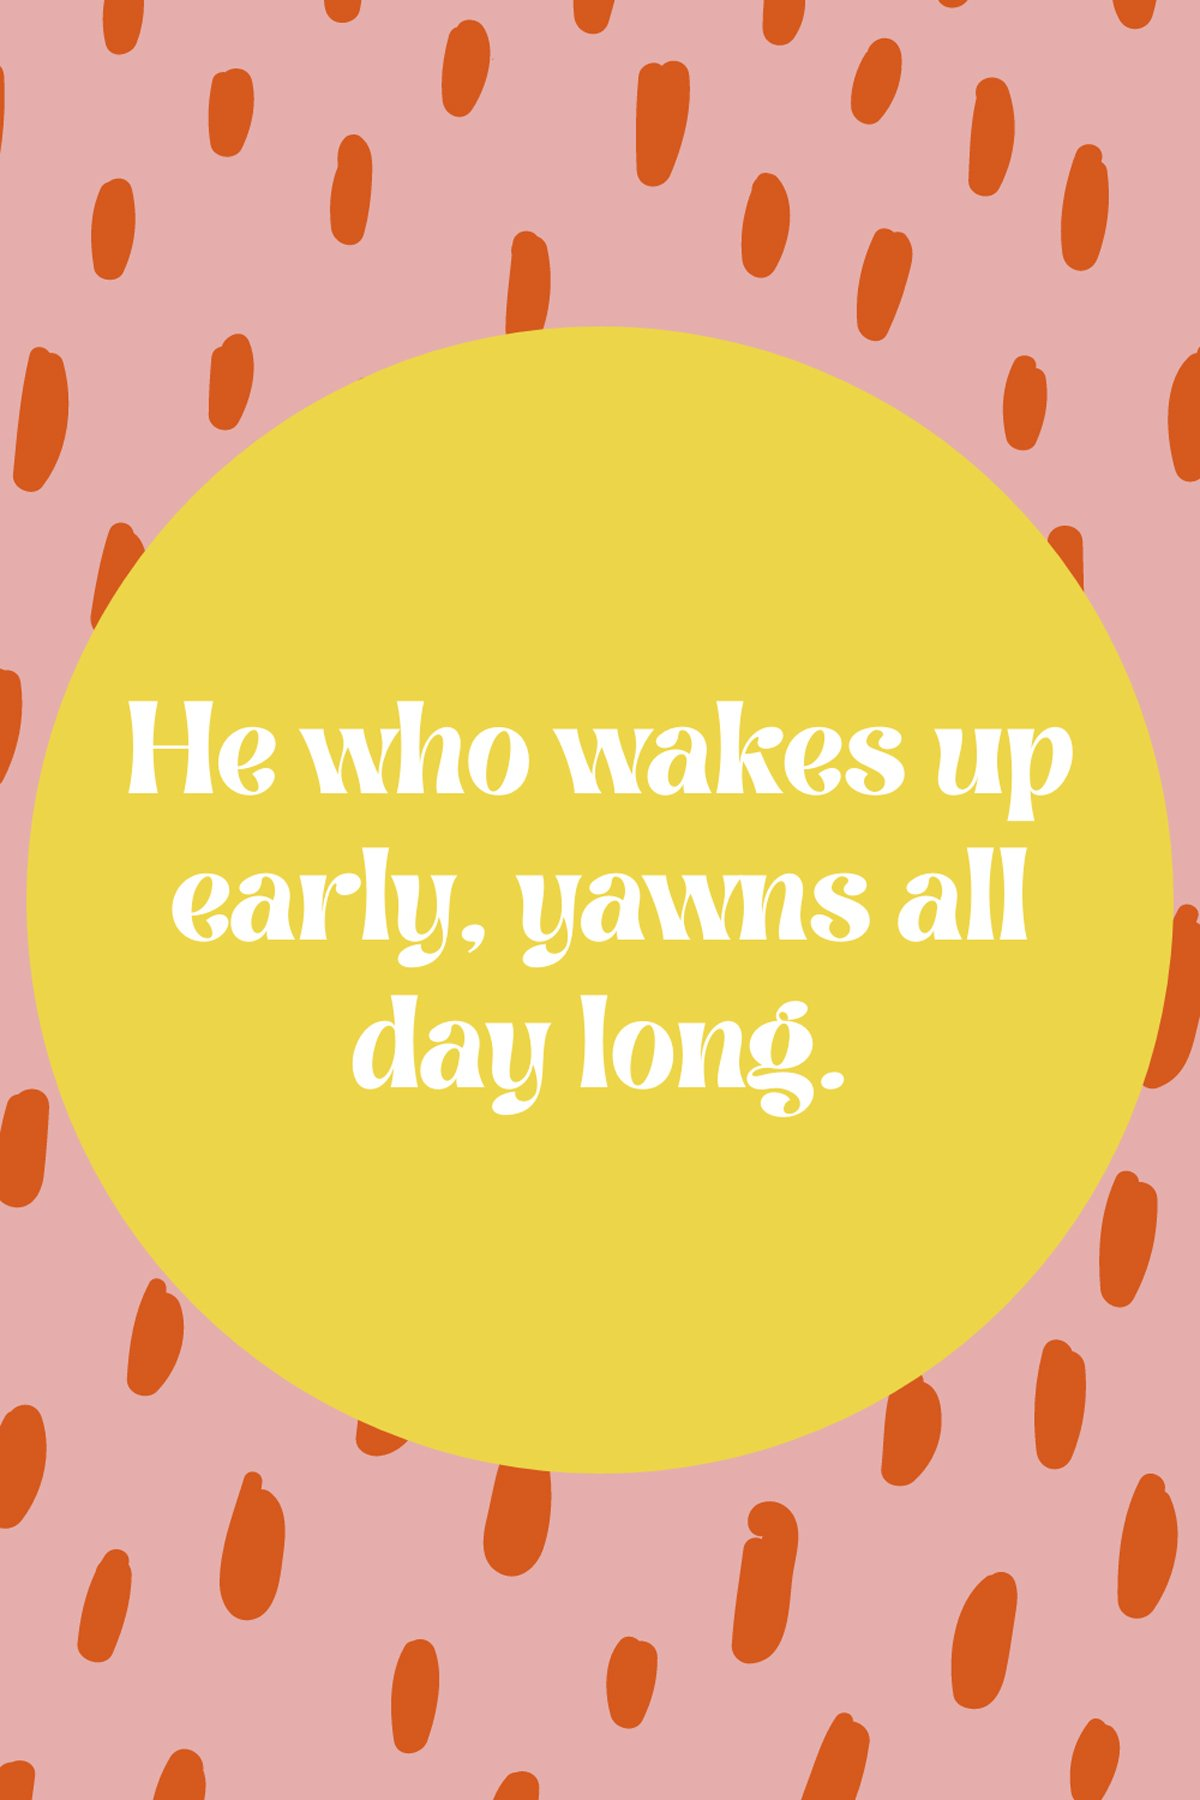 Funny Wake Up Early Captions and Sayings